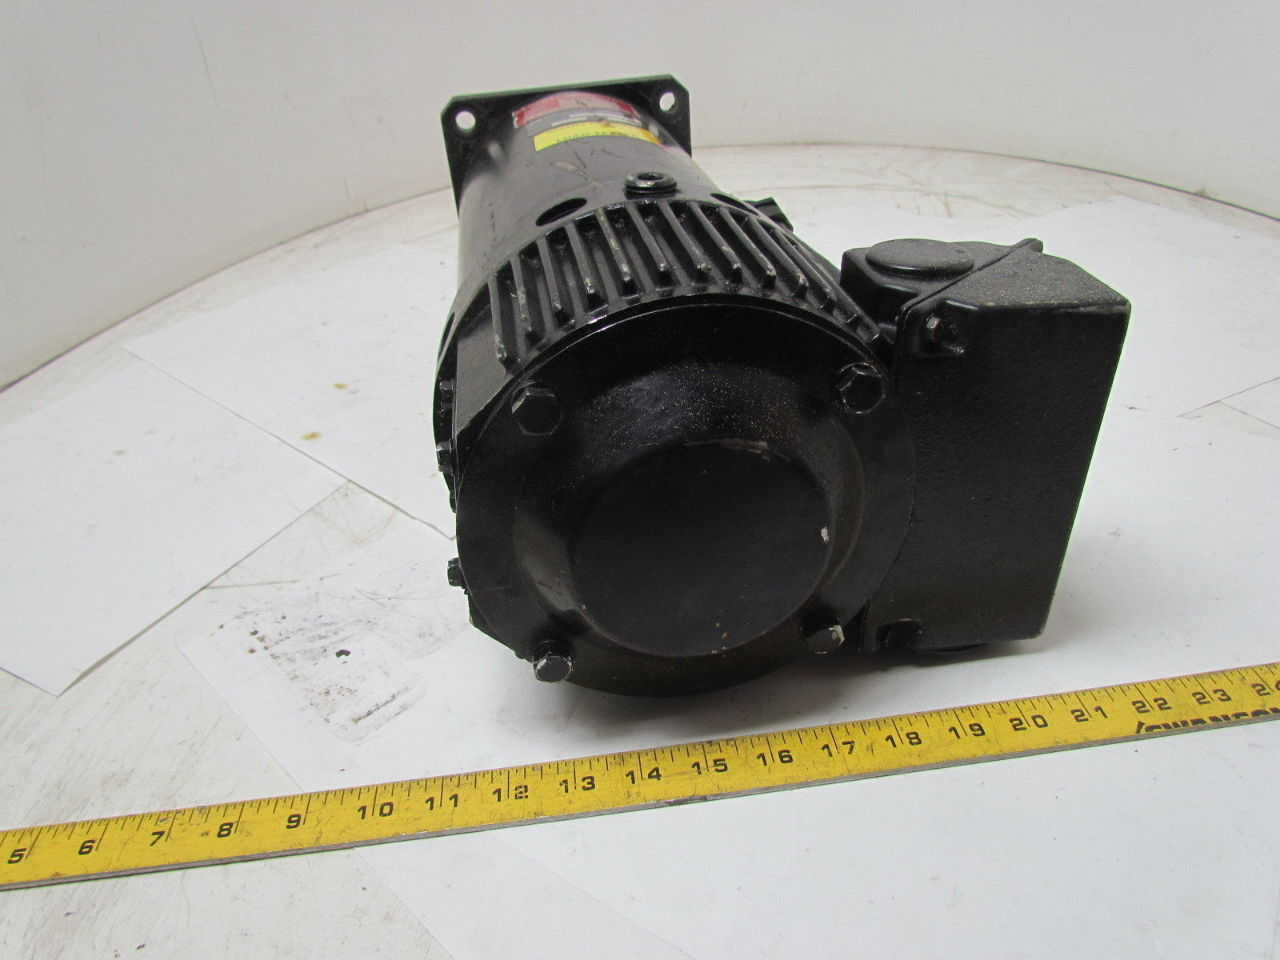 Ge general electric 183 18 1269 0 dc servo motor by hk for General electric motor parts